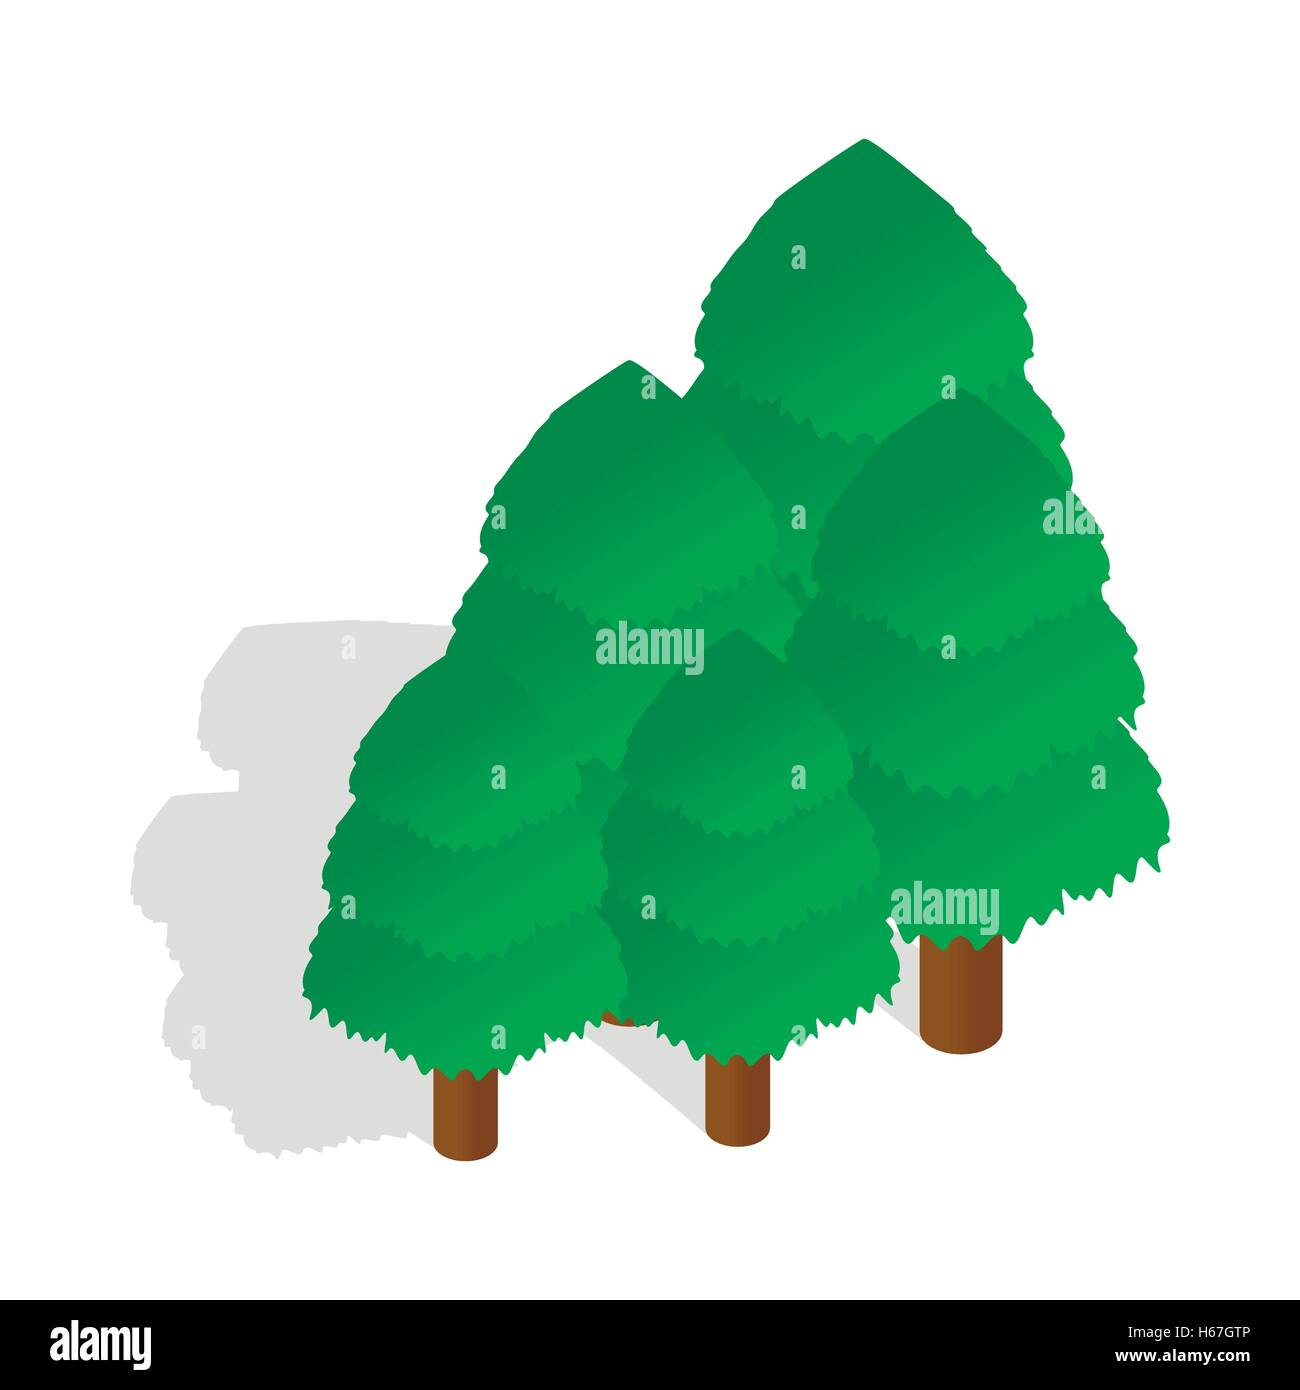 Trees icon in isometric 3d style - Stock Image